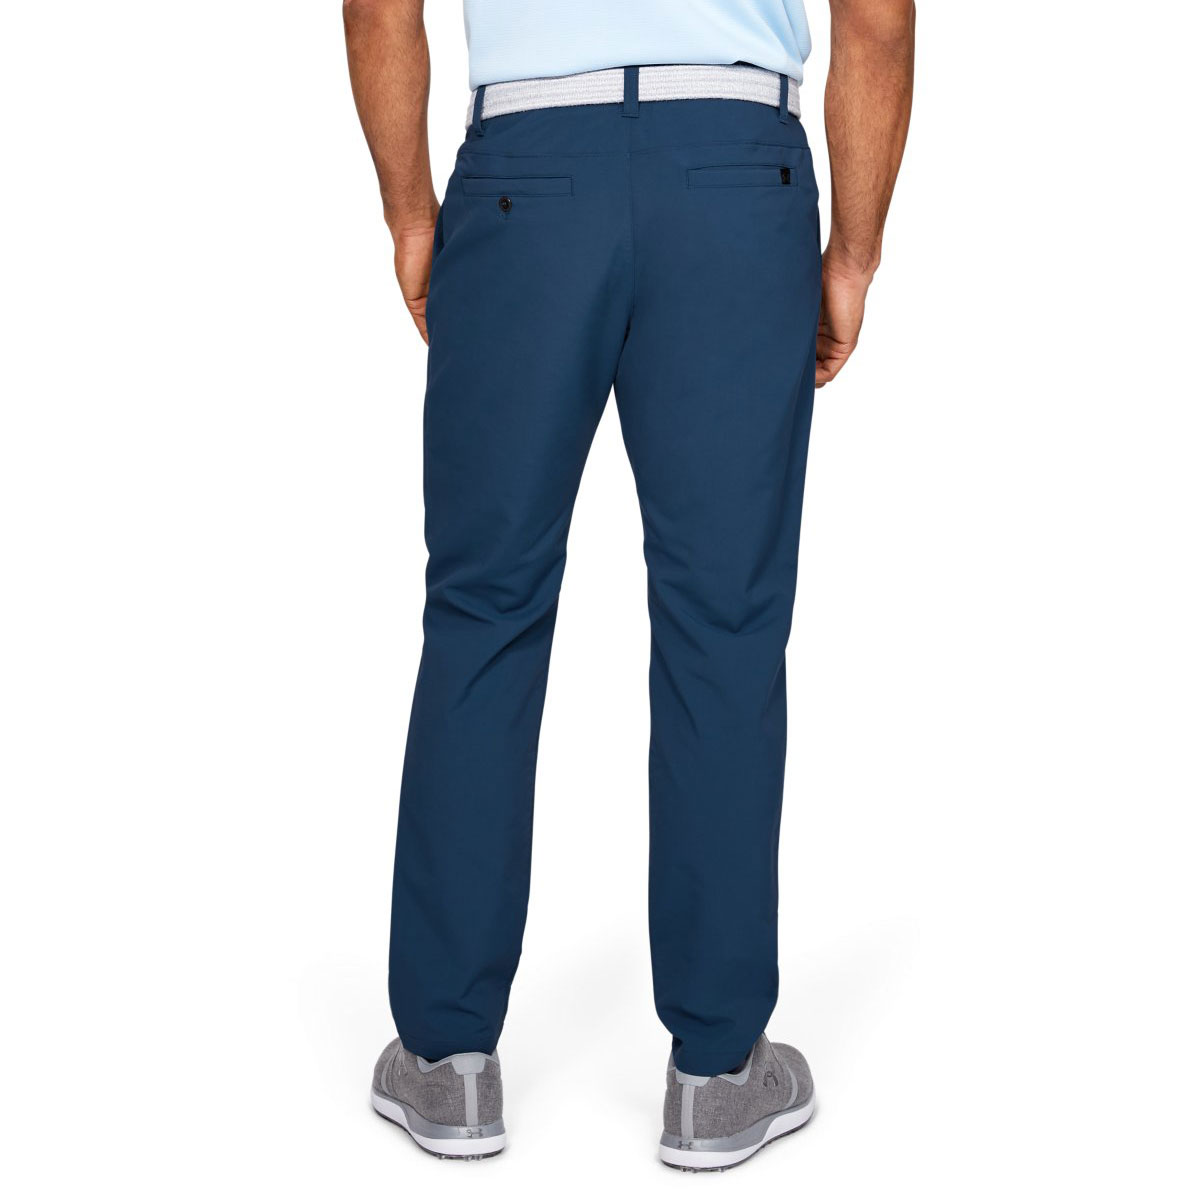 Under-Armour-Mens-2019-EU-Performance-Slim-Taper-Soft-Stretch-Golf-Trousers thumbnail 15